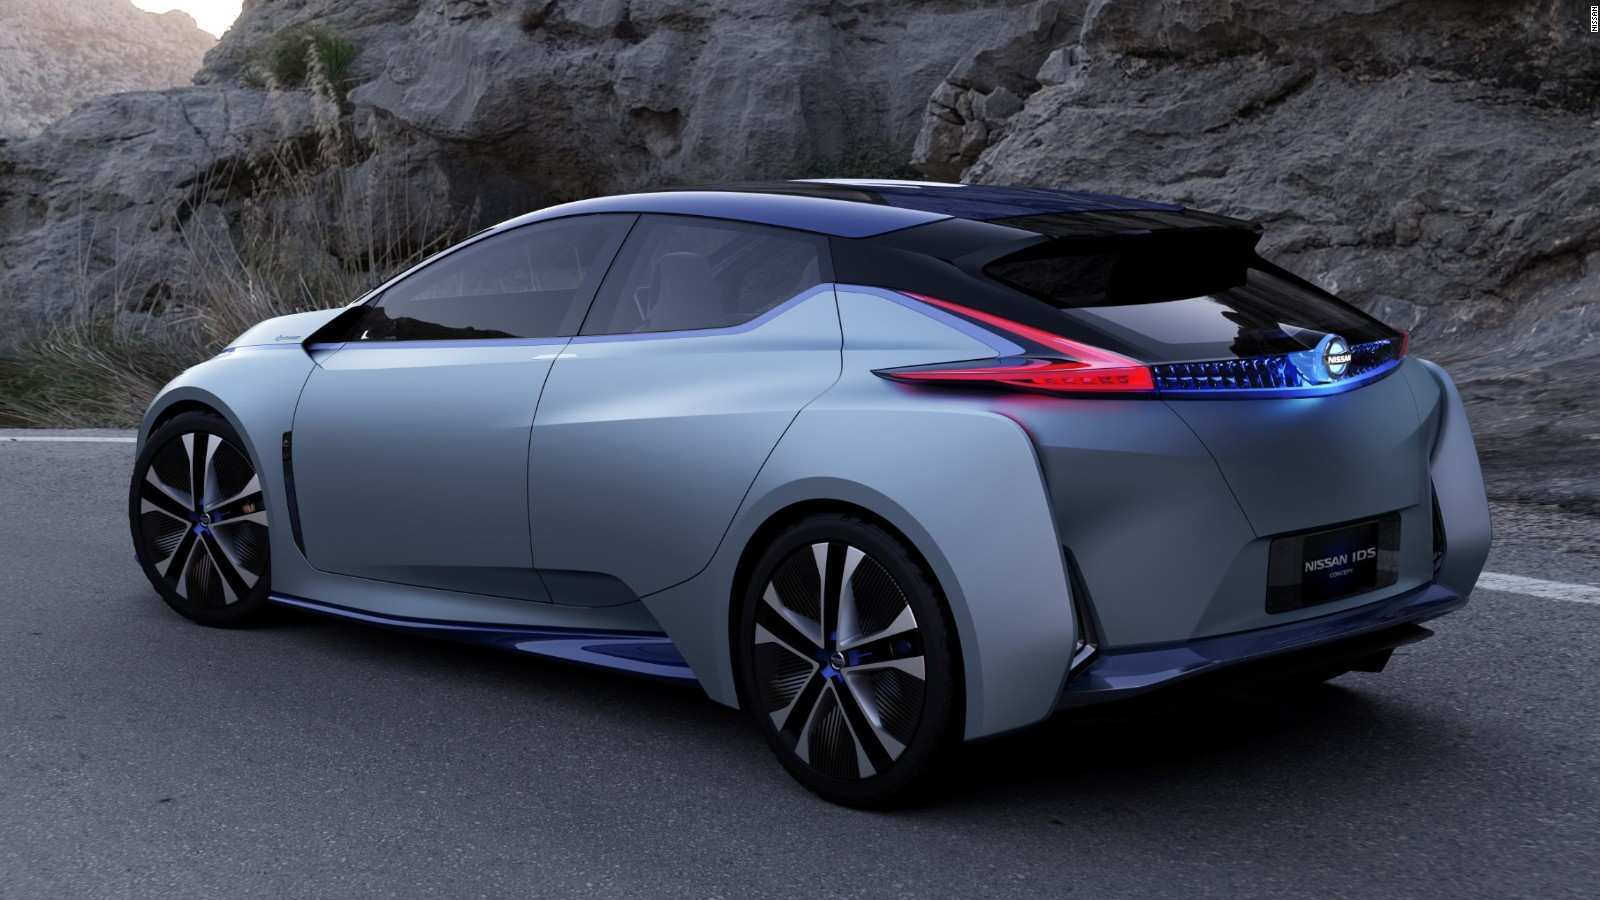 19 Best Nissan Ids 2020 Wallpaper